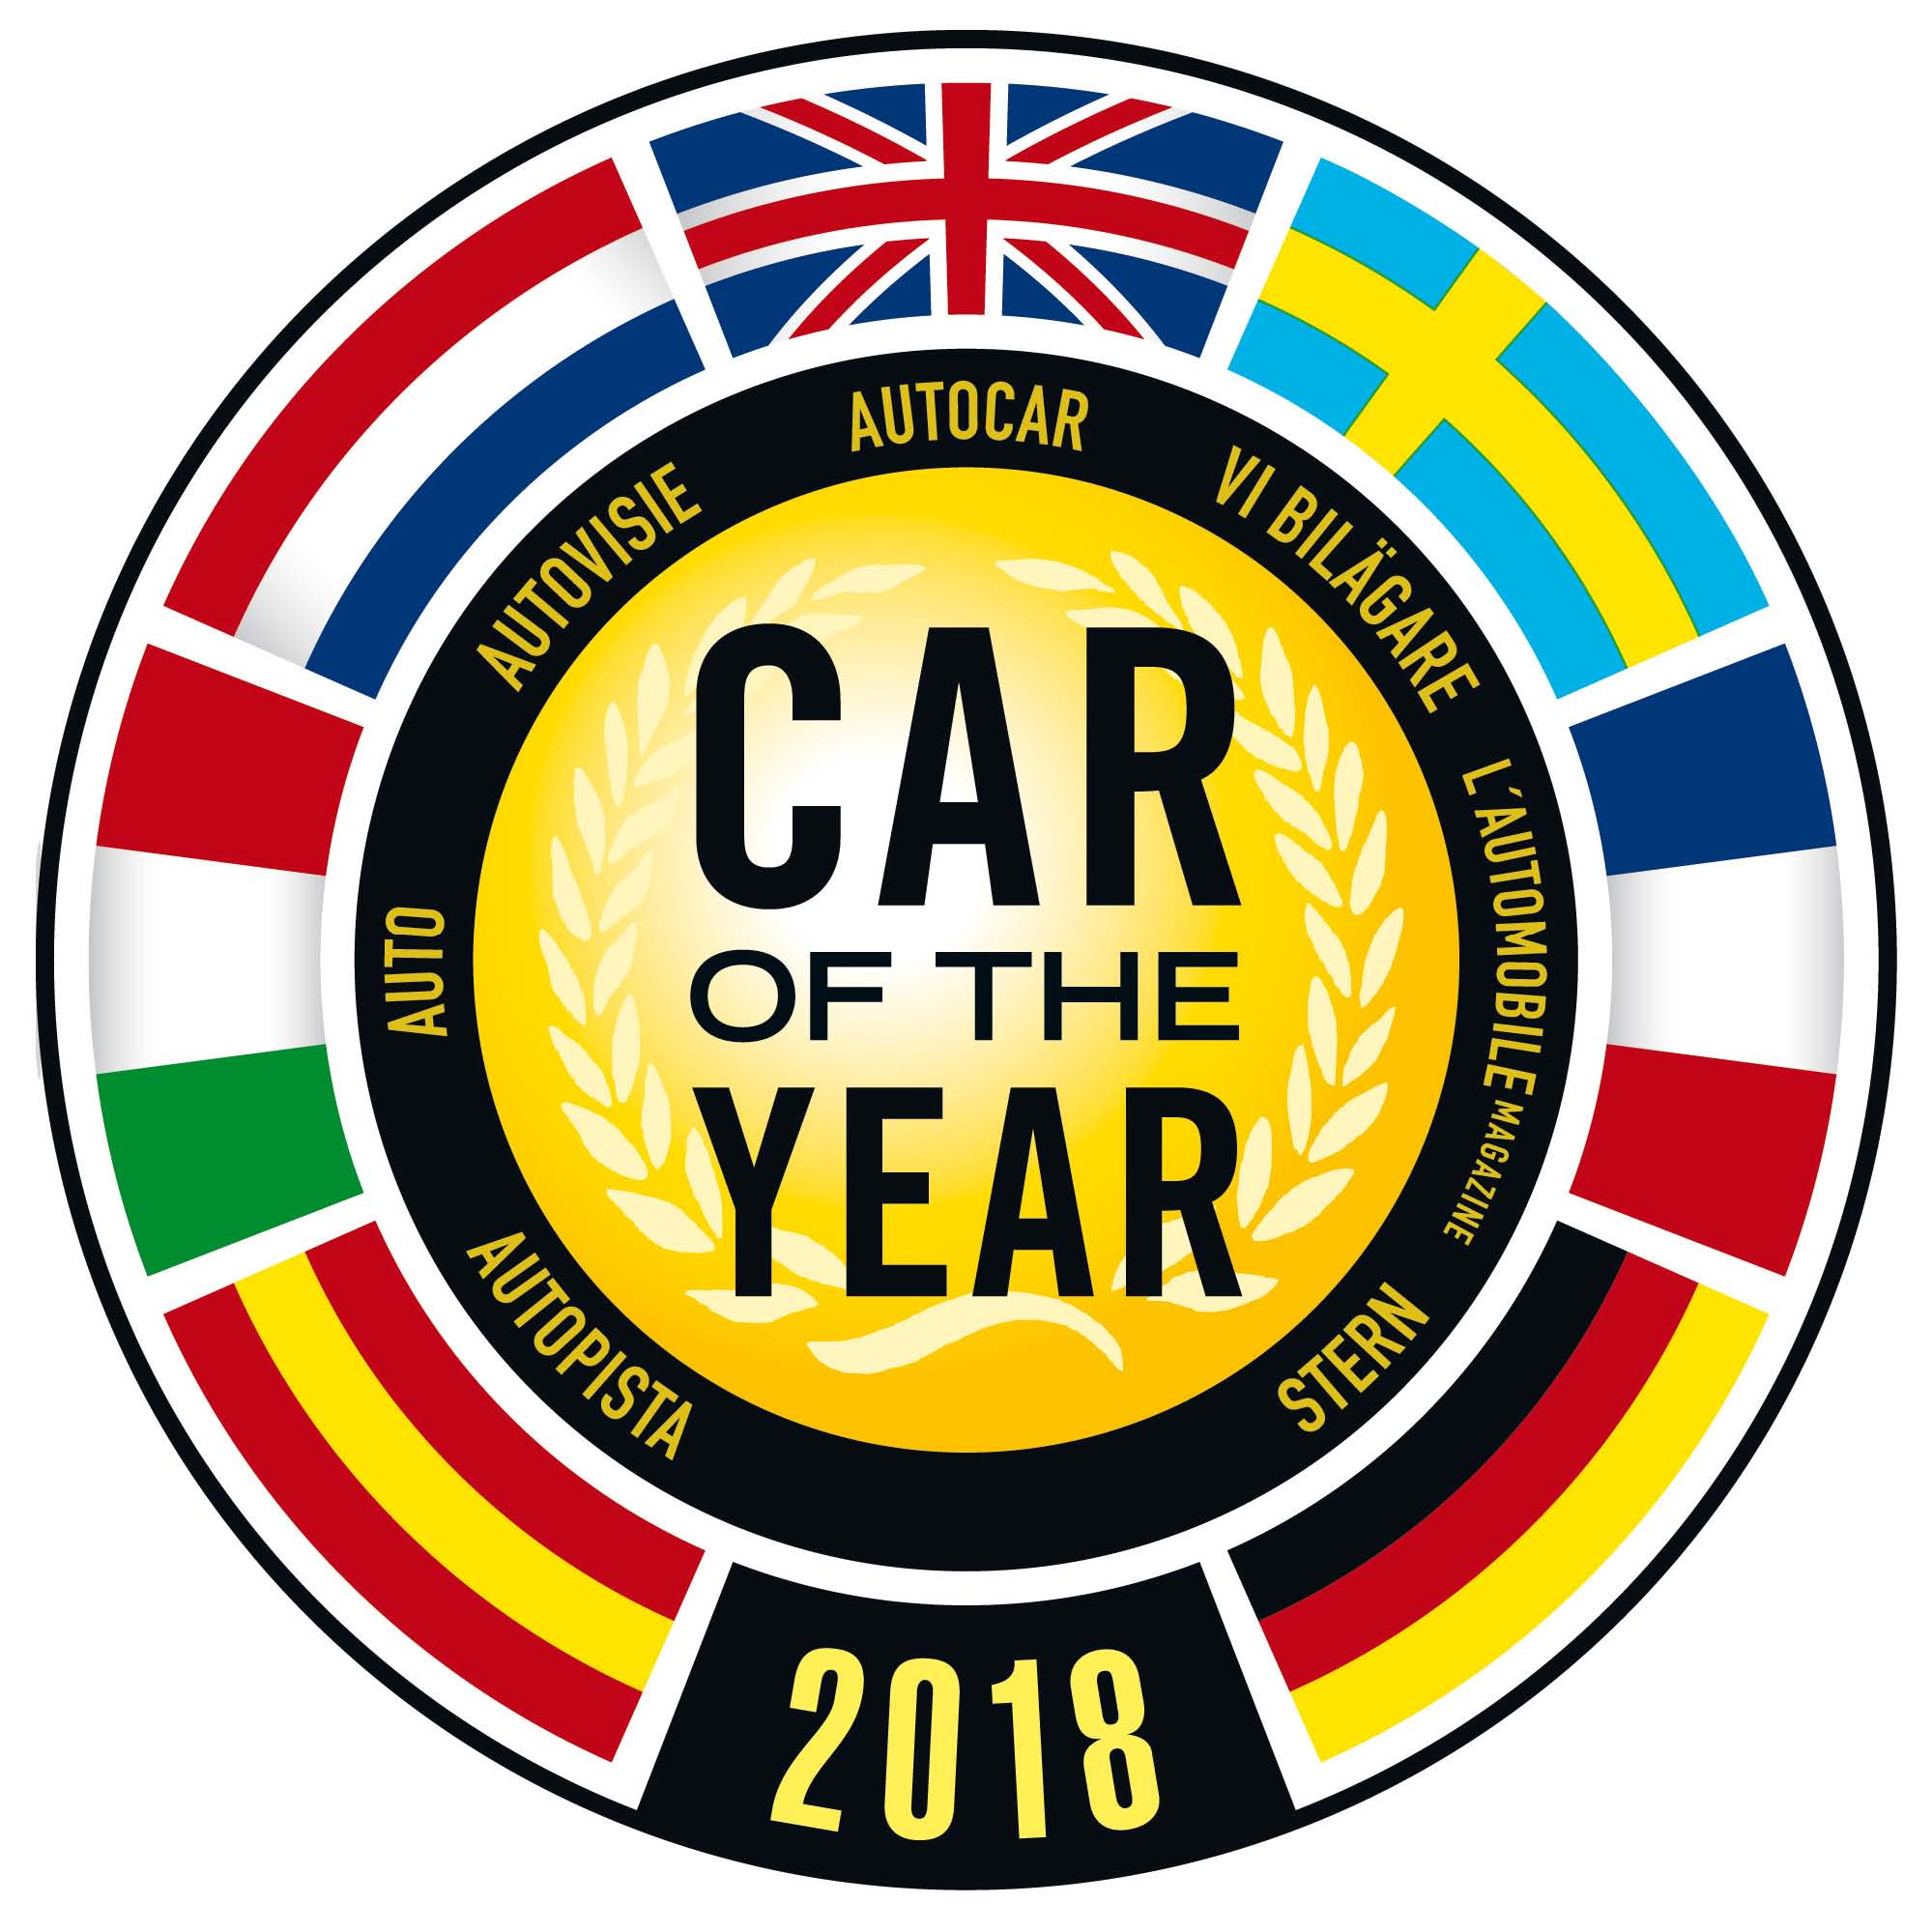 Cervinia - Car of the year - Space and Event